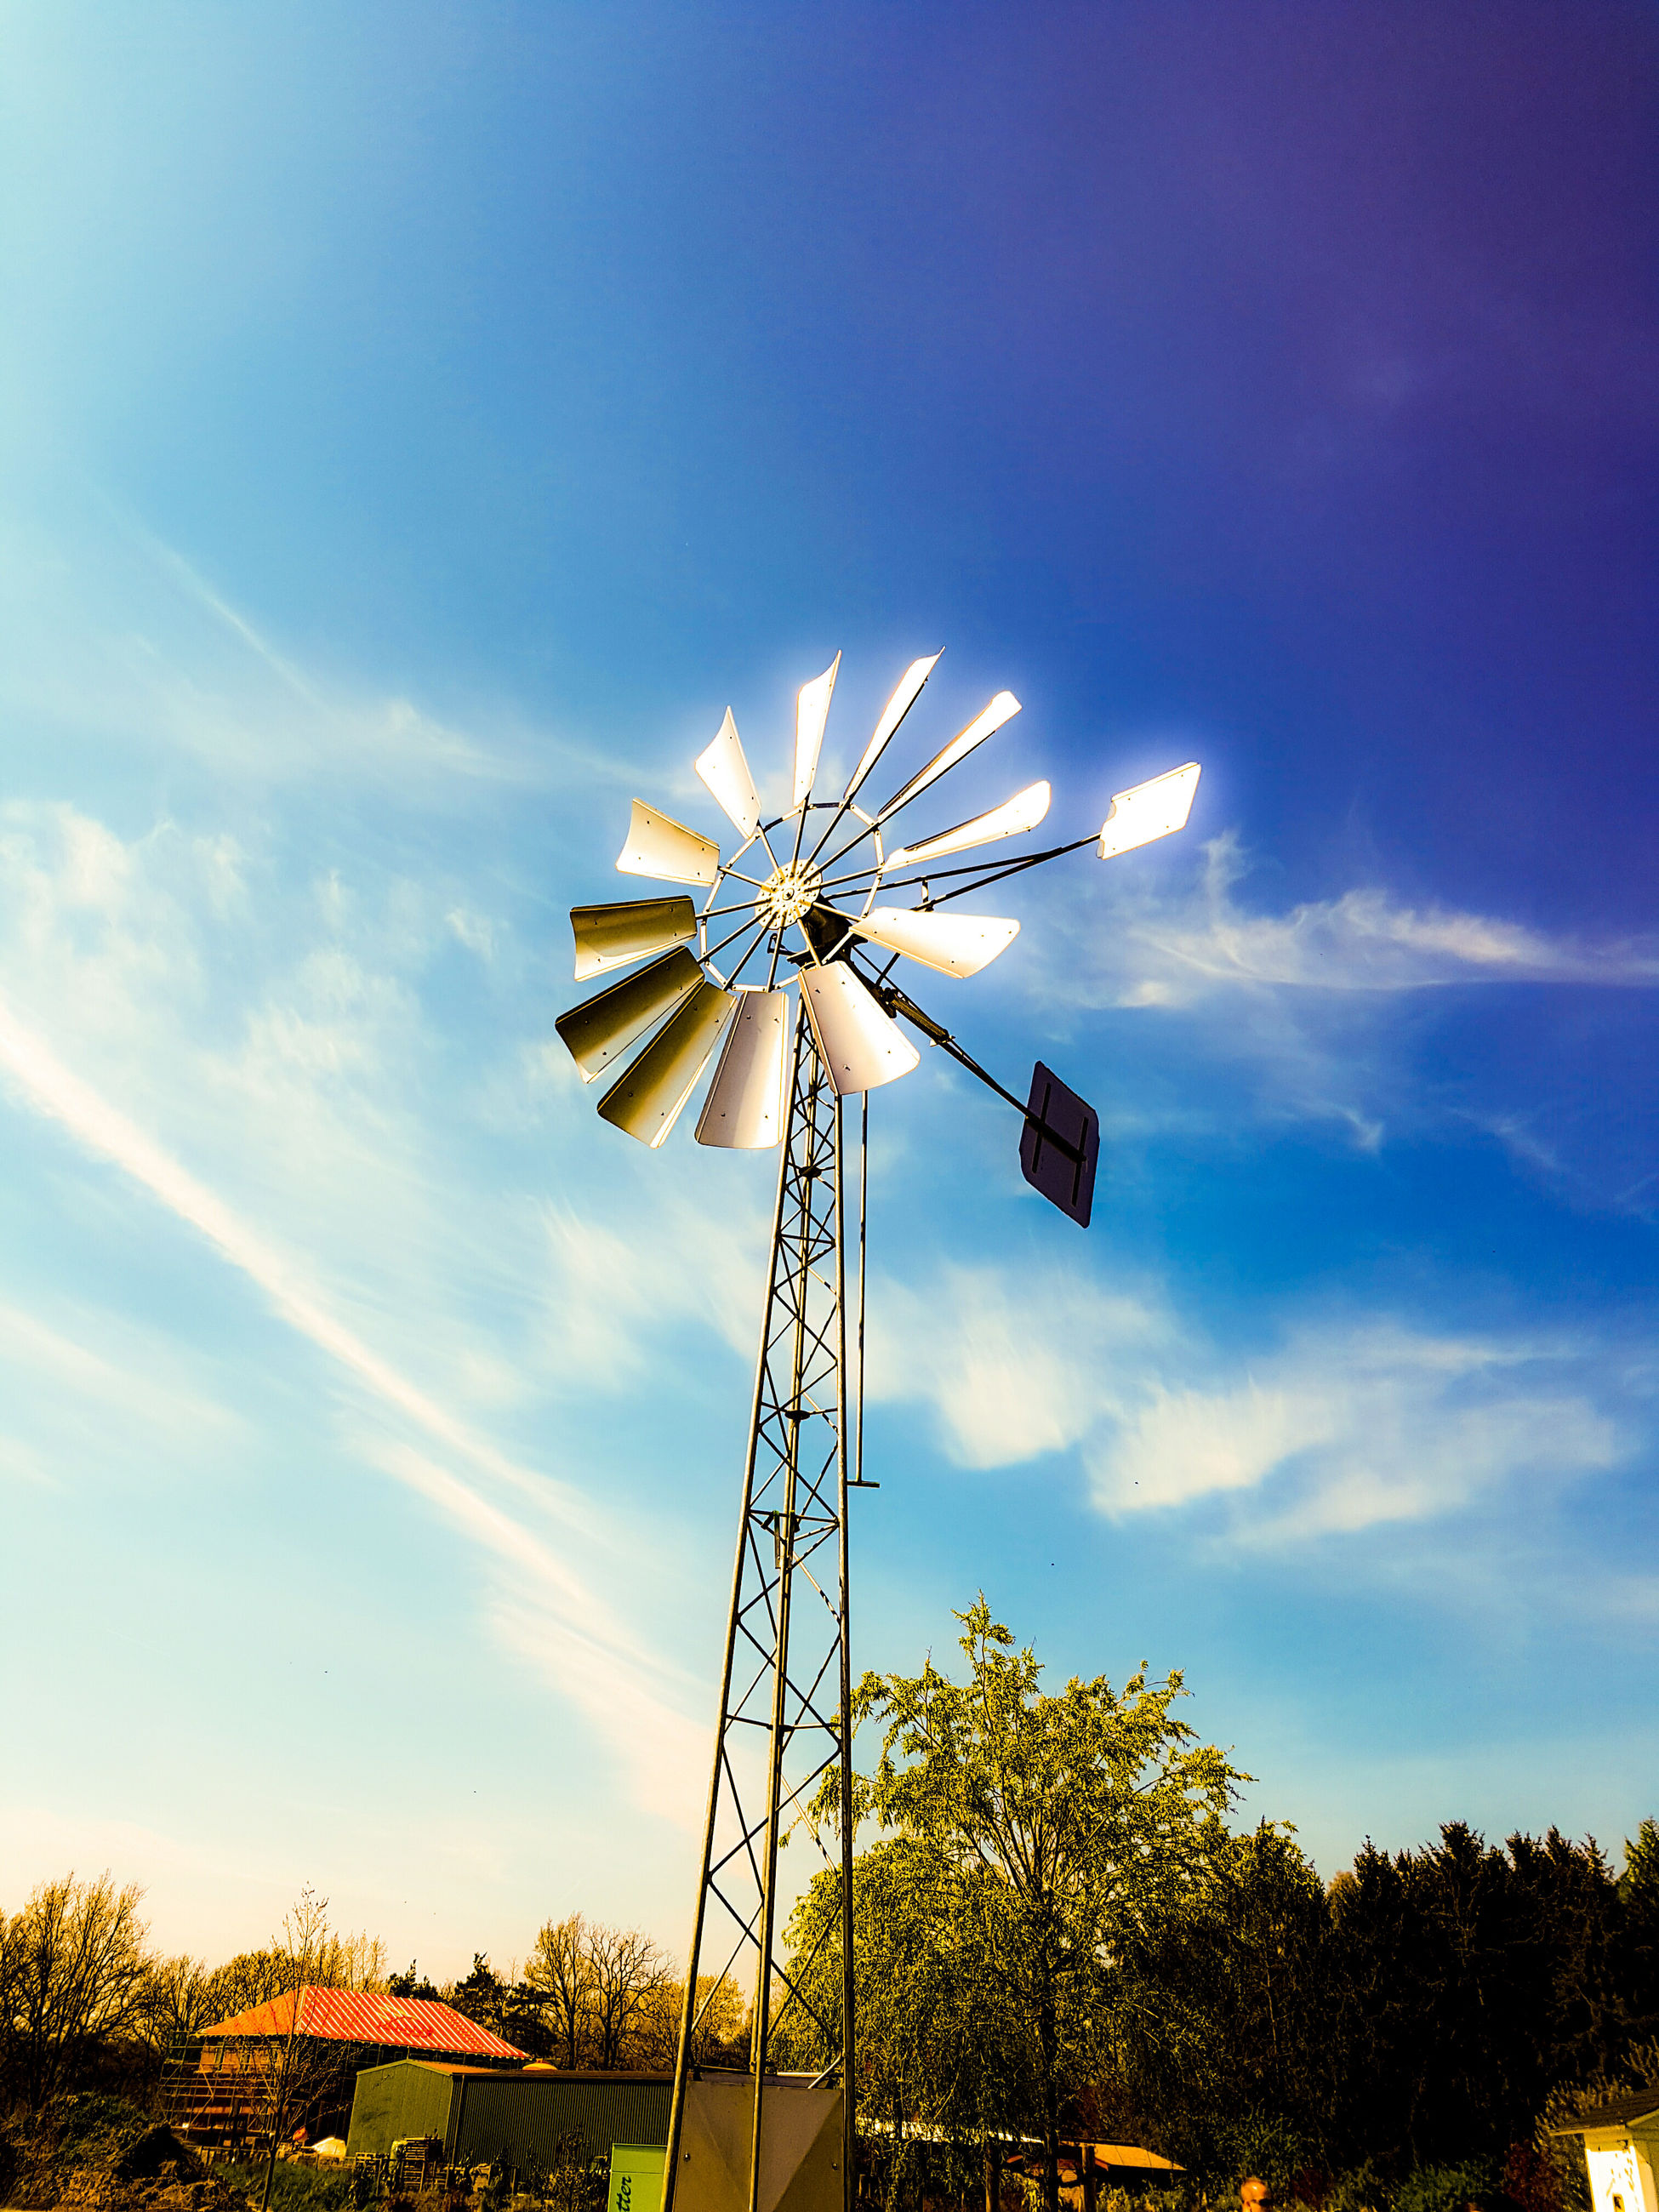 wind power, windmill, alternative energy, environmental conservation, low angle view, wind turbine, renewable energy, fuel and power generation, sky, traditional windmill, technology, cloud - sky, tree, field, cloud, rural scene, amusement park, water pump, blue, cloudy